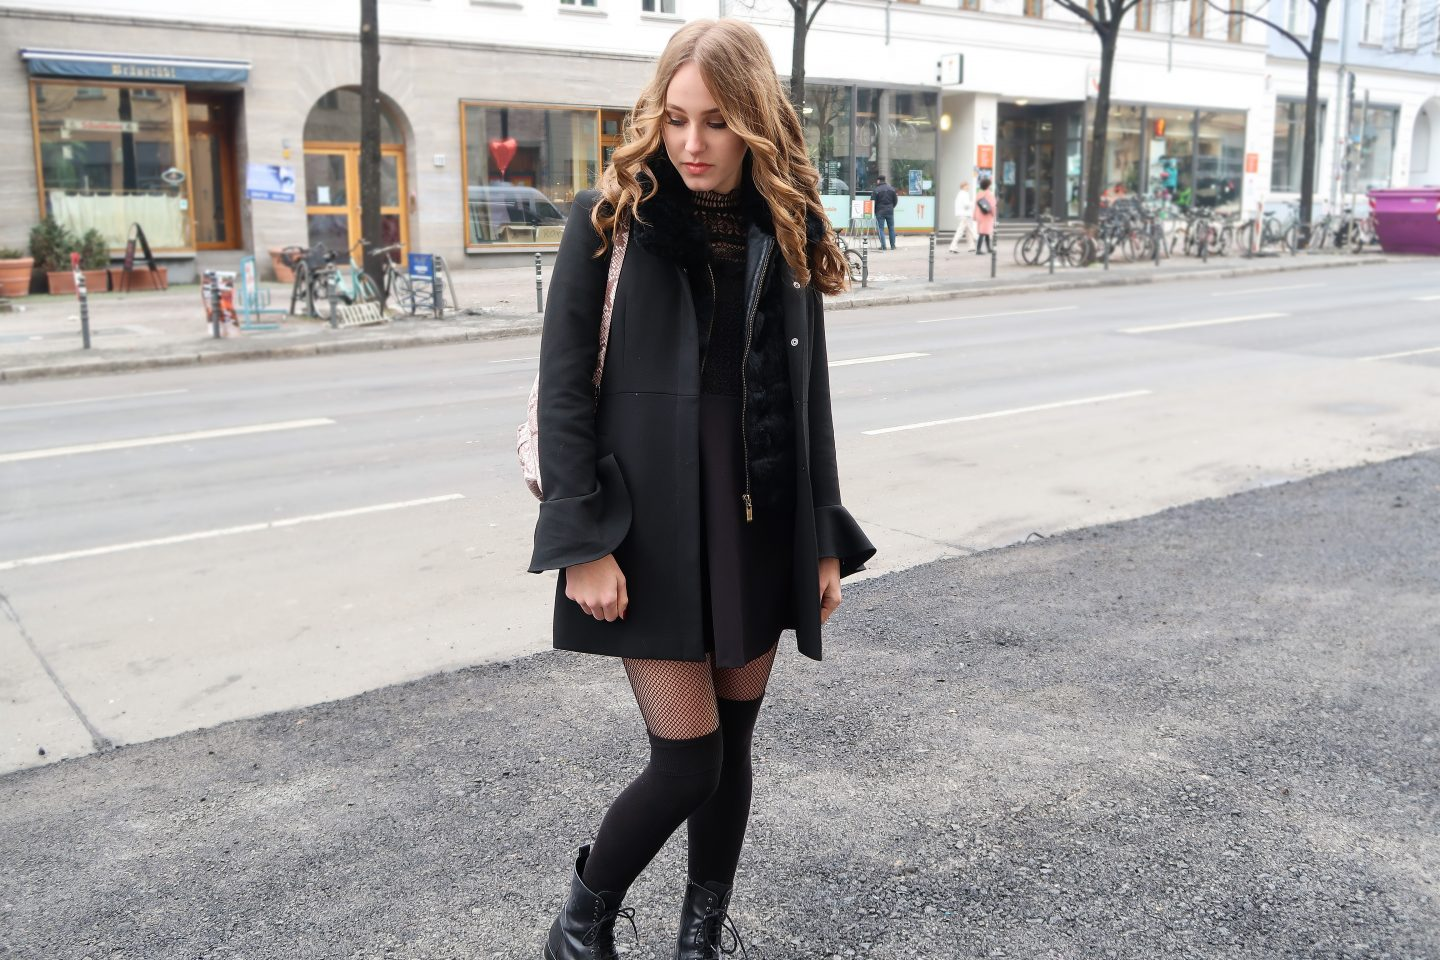 MBFW Outfit - 1 - Berlin fashion week